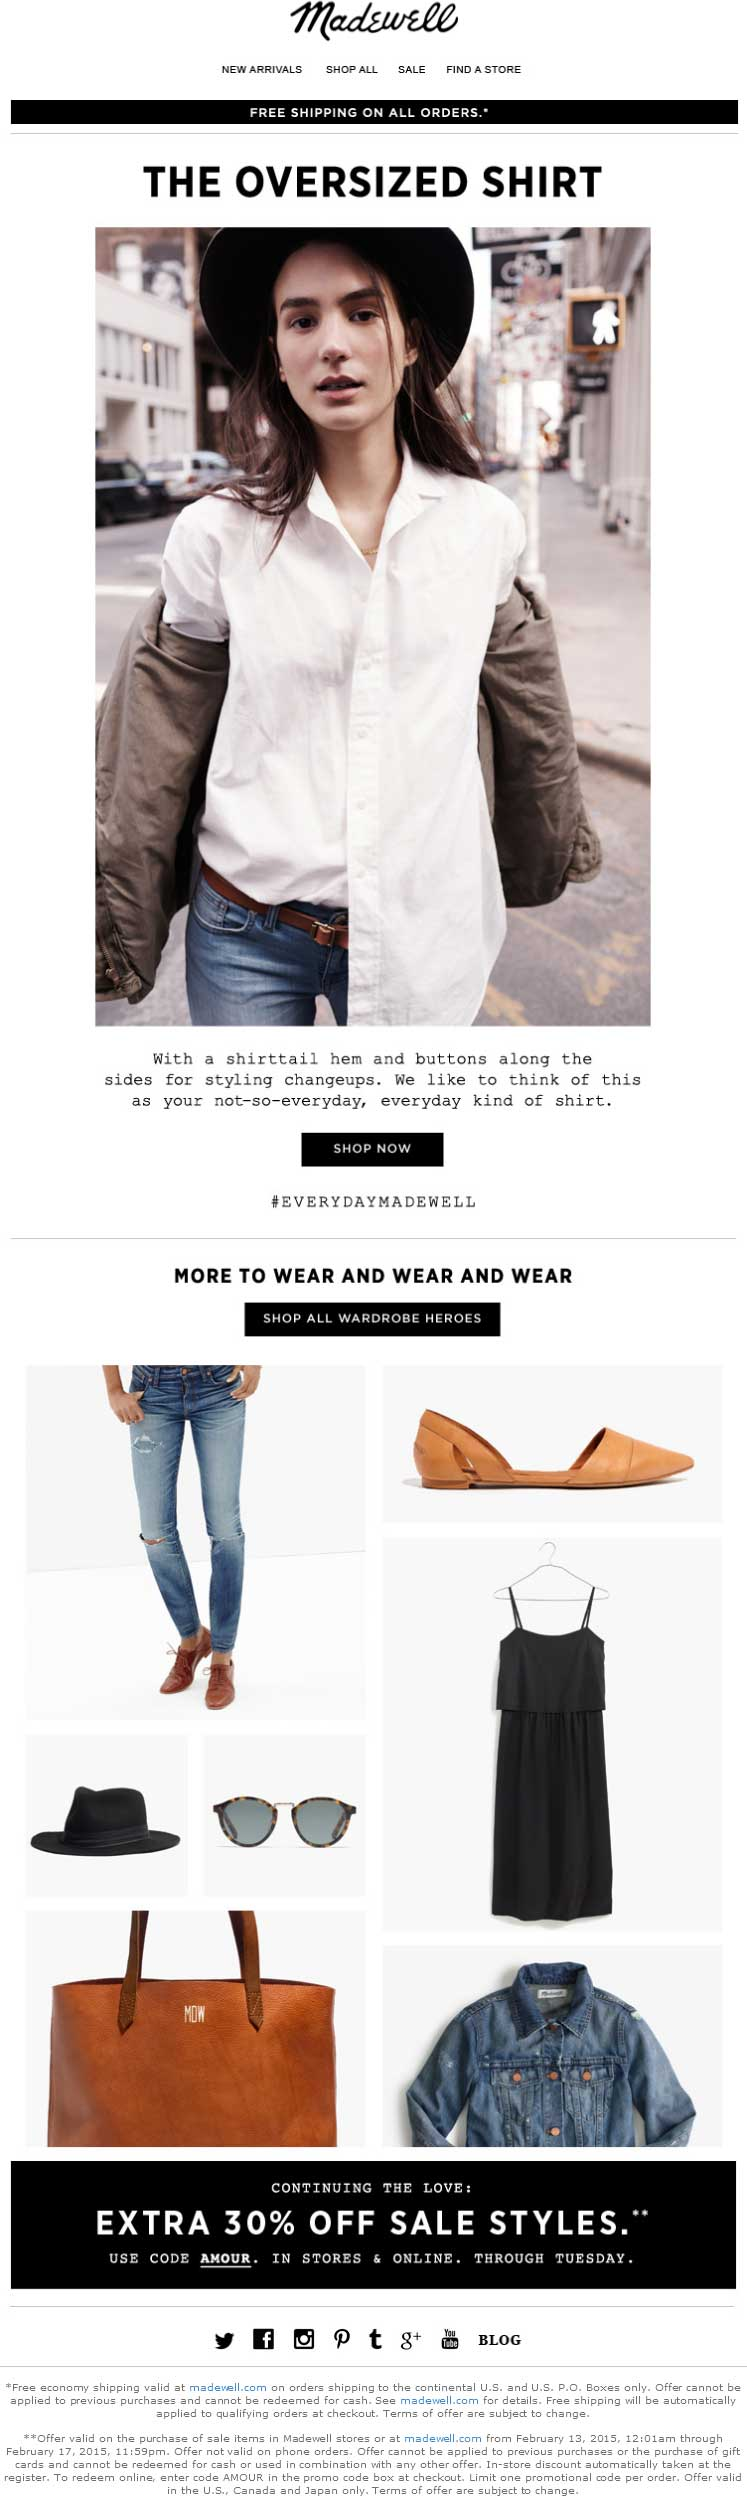 Madewell Coupon September 2017 Extra 30% off sale items at Madewell, or online via promo code AMOUR